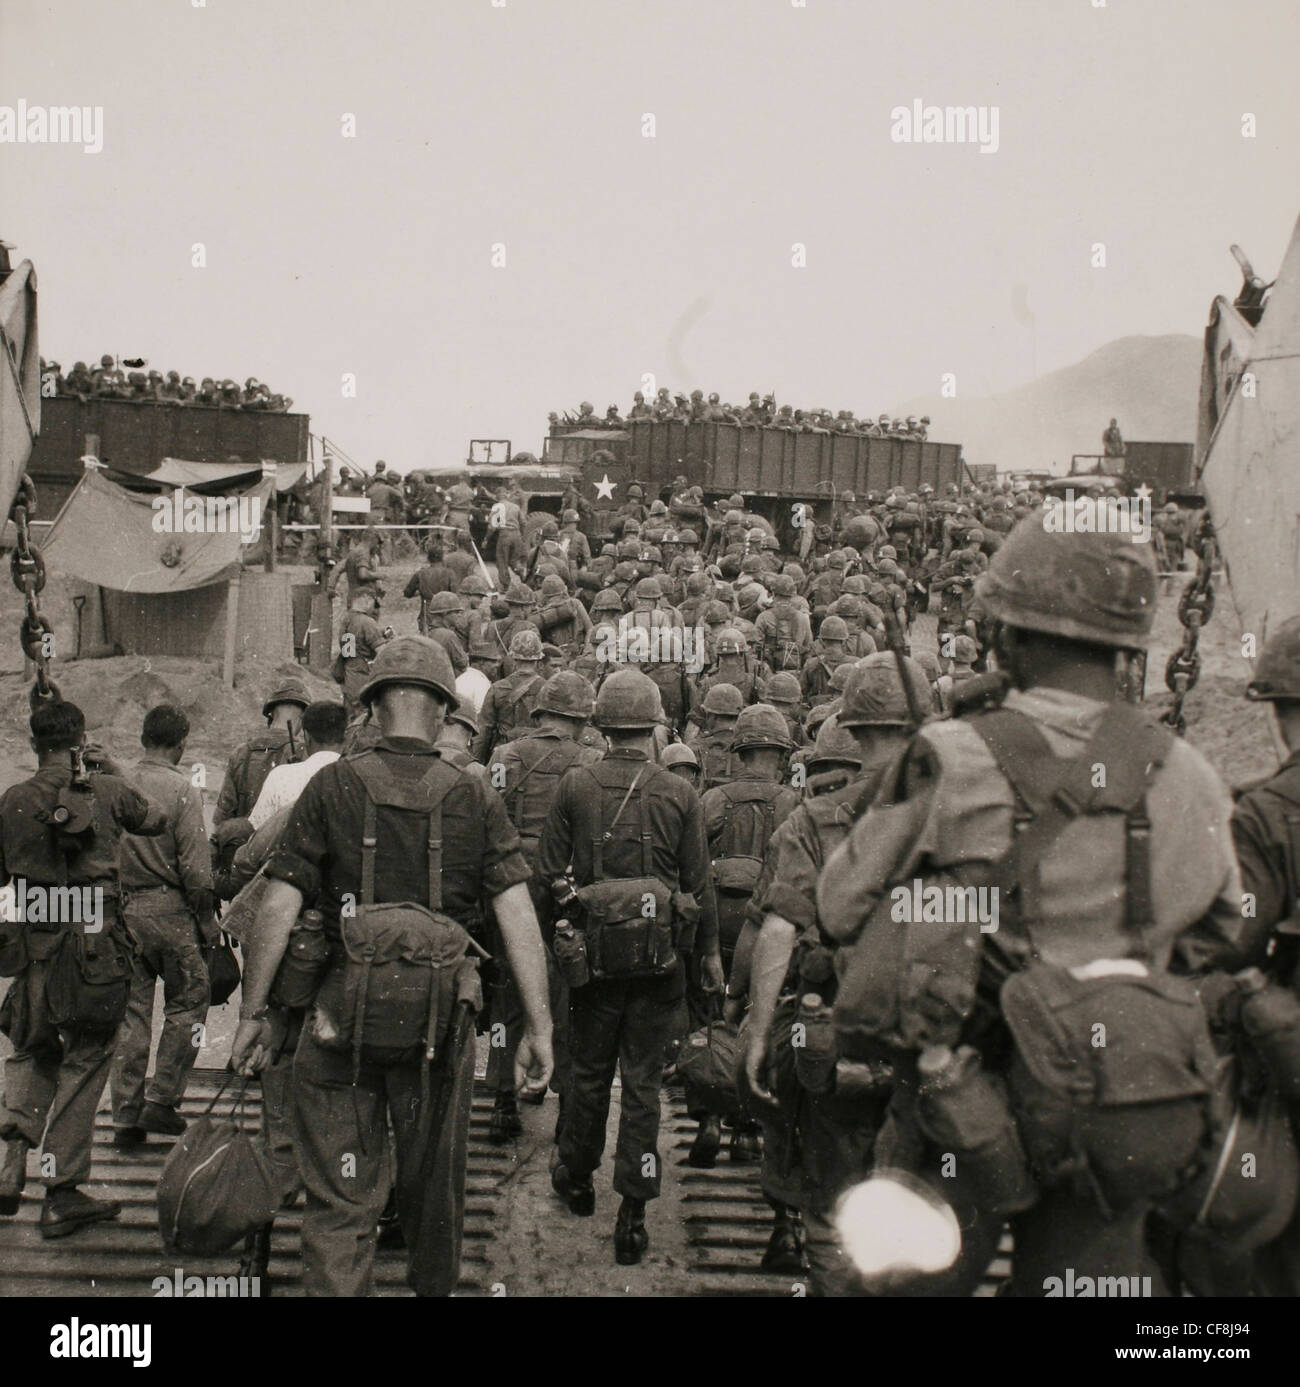 Arrival of the U.S. 1st Cav Div (Air Mobile) in Vietnam. The 15,800 men and 424 helicopters and planes disembarked - Stock Image